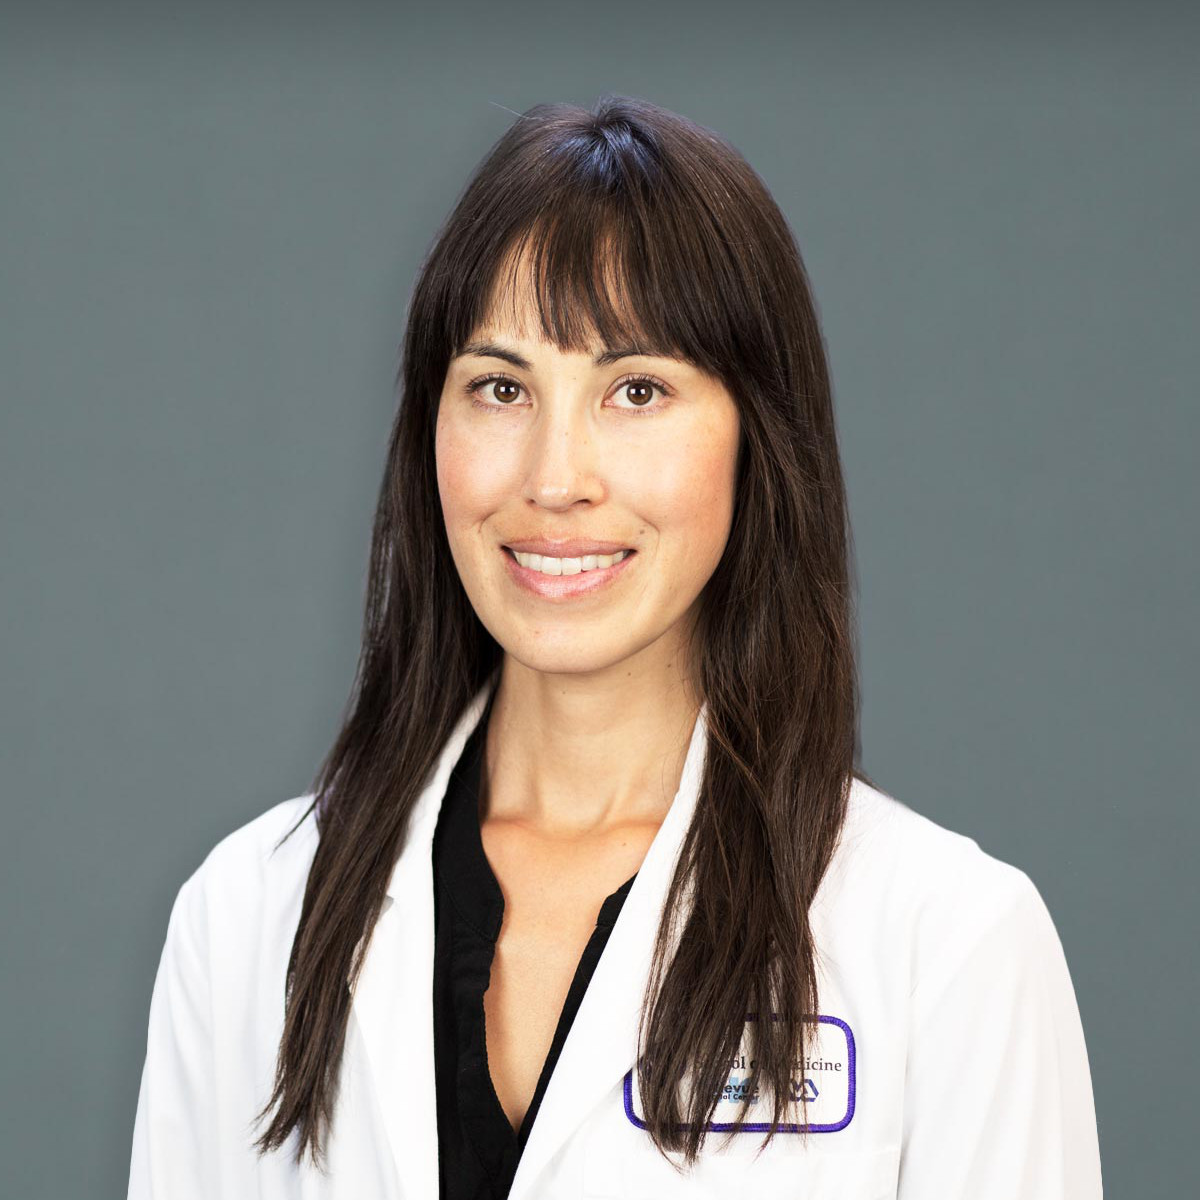 Kate J. Baicy,MD, PhD. Obstetrics, Gynecology